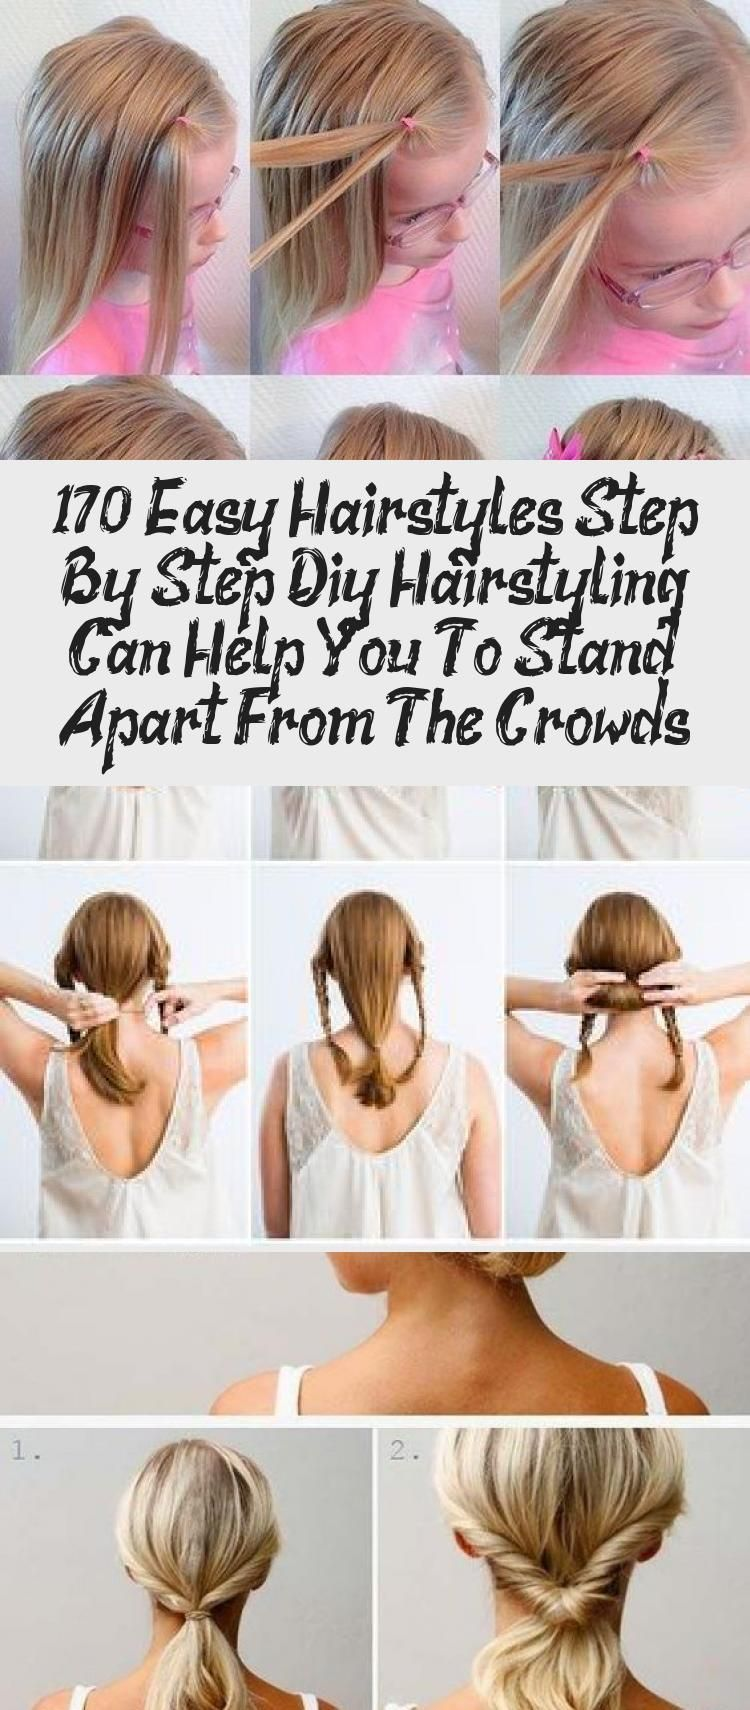 170 Easy Hairstyles Step By Step Diy Hair Styling Can Help You To Stand Apart From The Crowds In 2020 Hair Styles Easy Hairstyles Diy Hairstyles